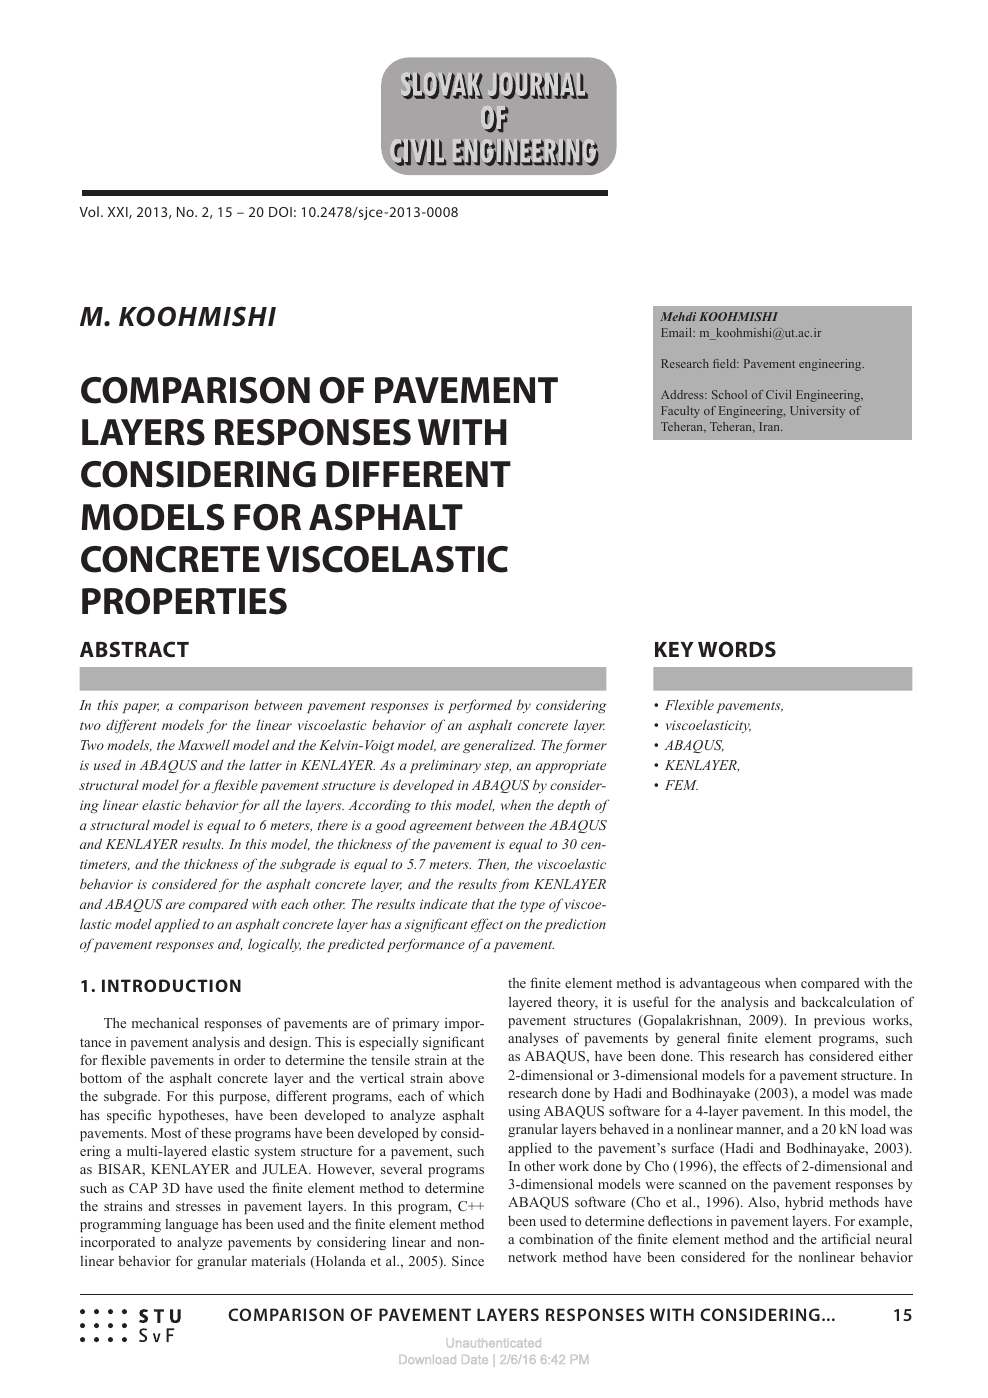 Comparison Of Pavement Layers Responses With Considering Different Models For Asphalt Concrete Viscoelastic Properties Topic Of Research Paper In Civil Engineering Download Scholarly Article Pdf And Read For Free On Cyberleninka